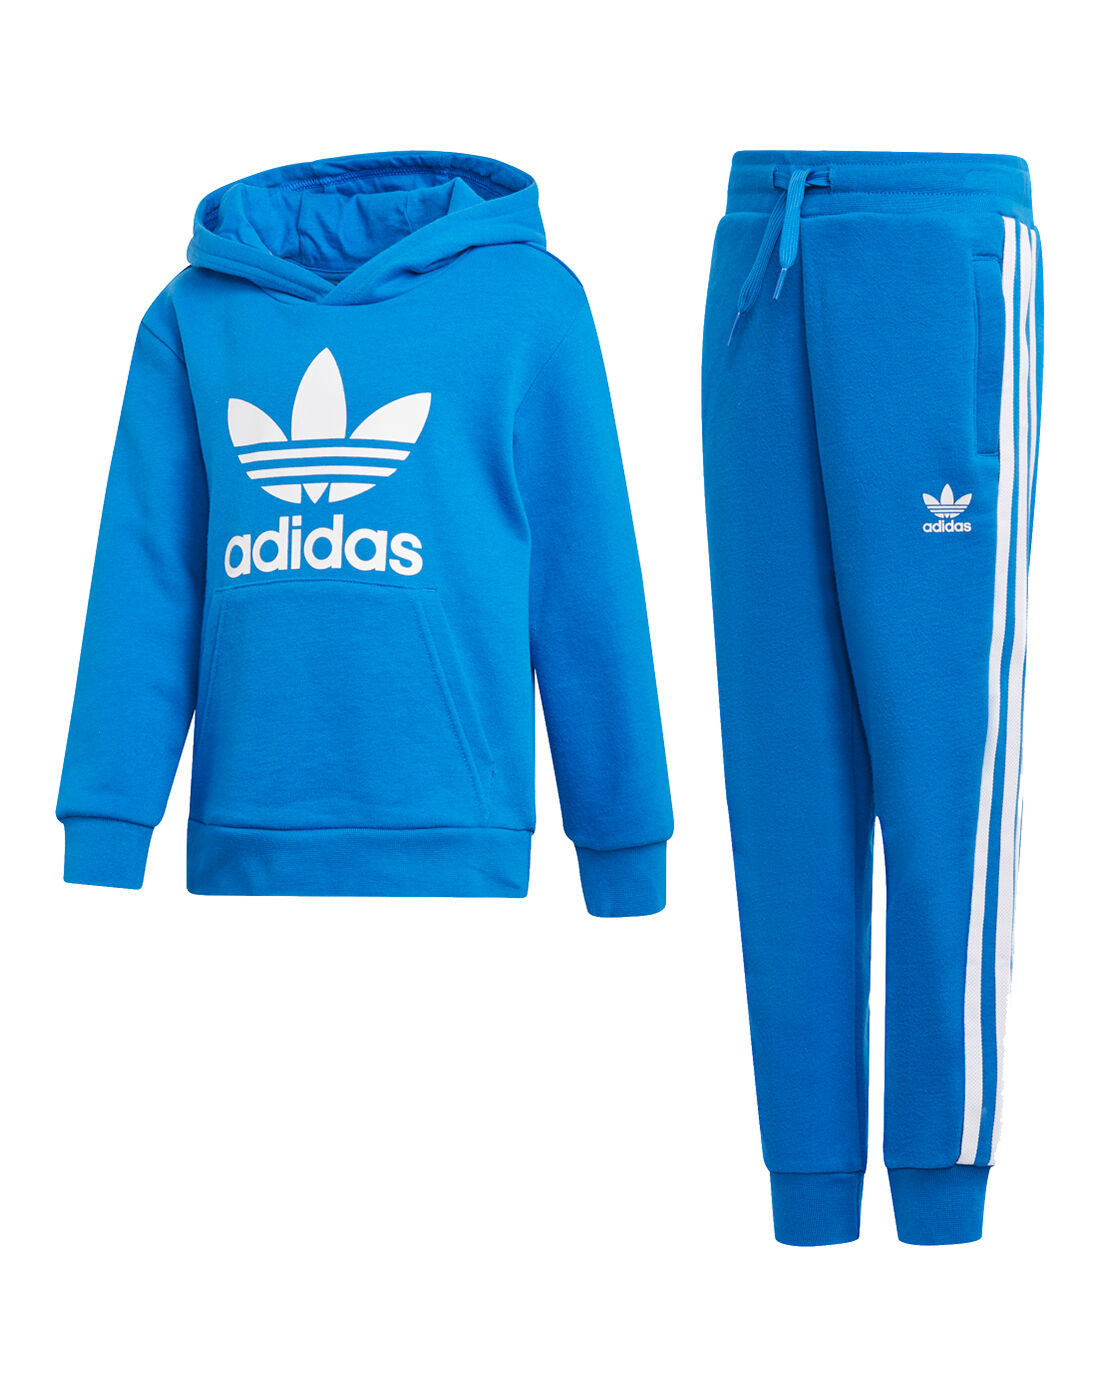 Boys Trefoil Trefoil Younger Boys Younger Tracksuit Younger Tracksuit Boys Trefoil Trefoil Tracksuit Boys Younger rqrzSIAFw